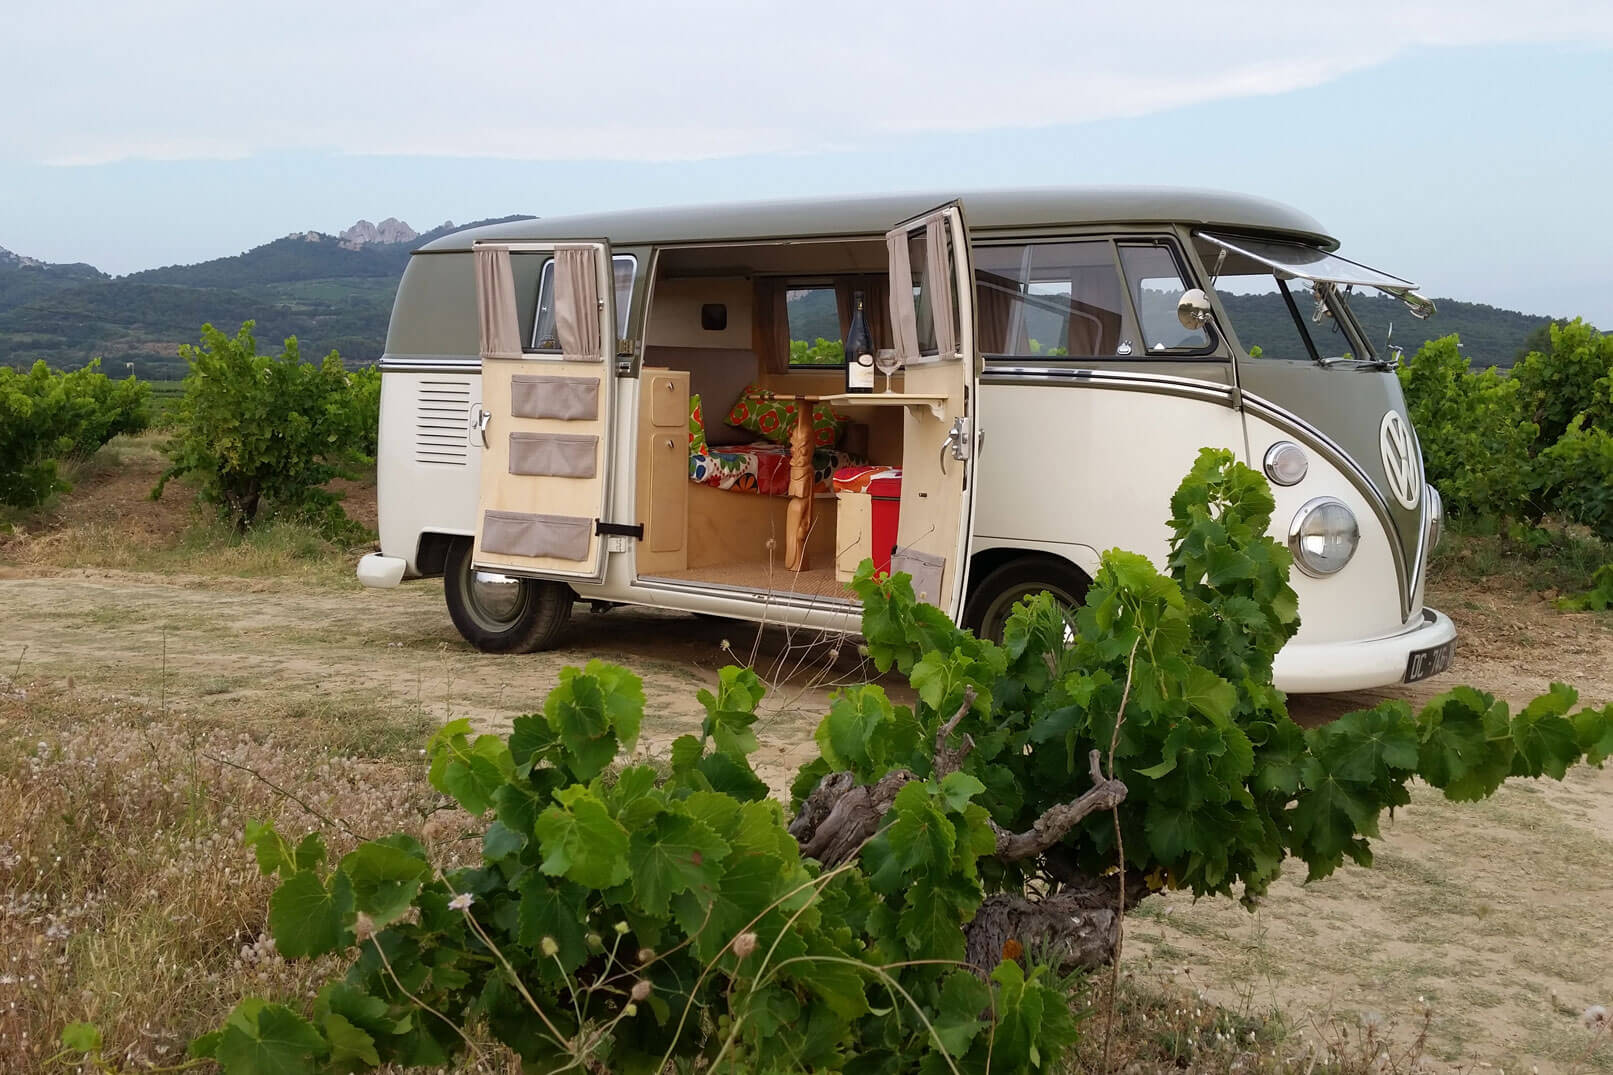 Through the vineyards in a vintage Volkswagen minivan